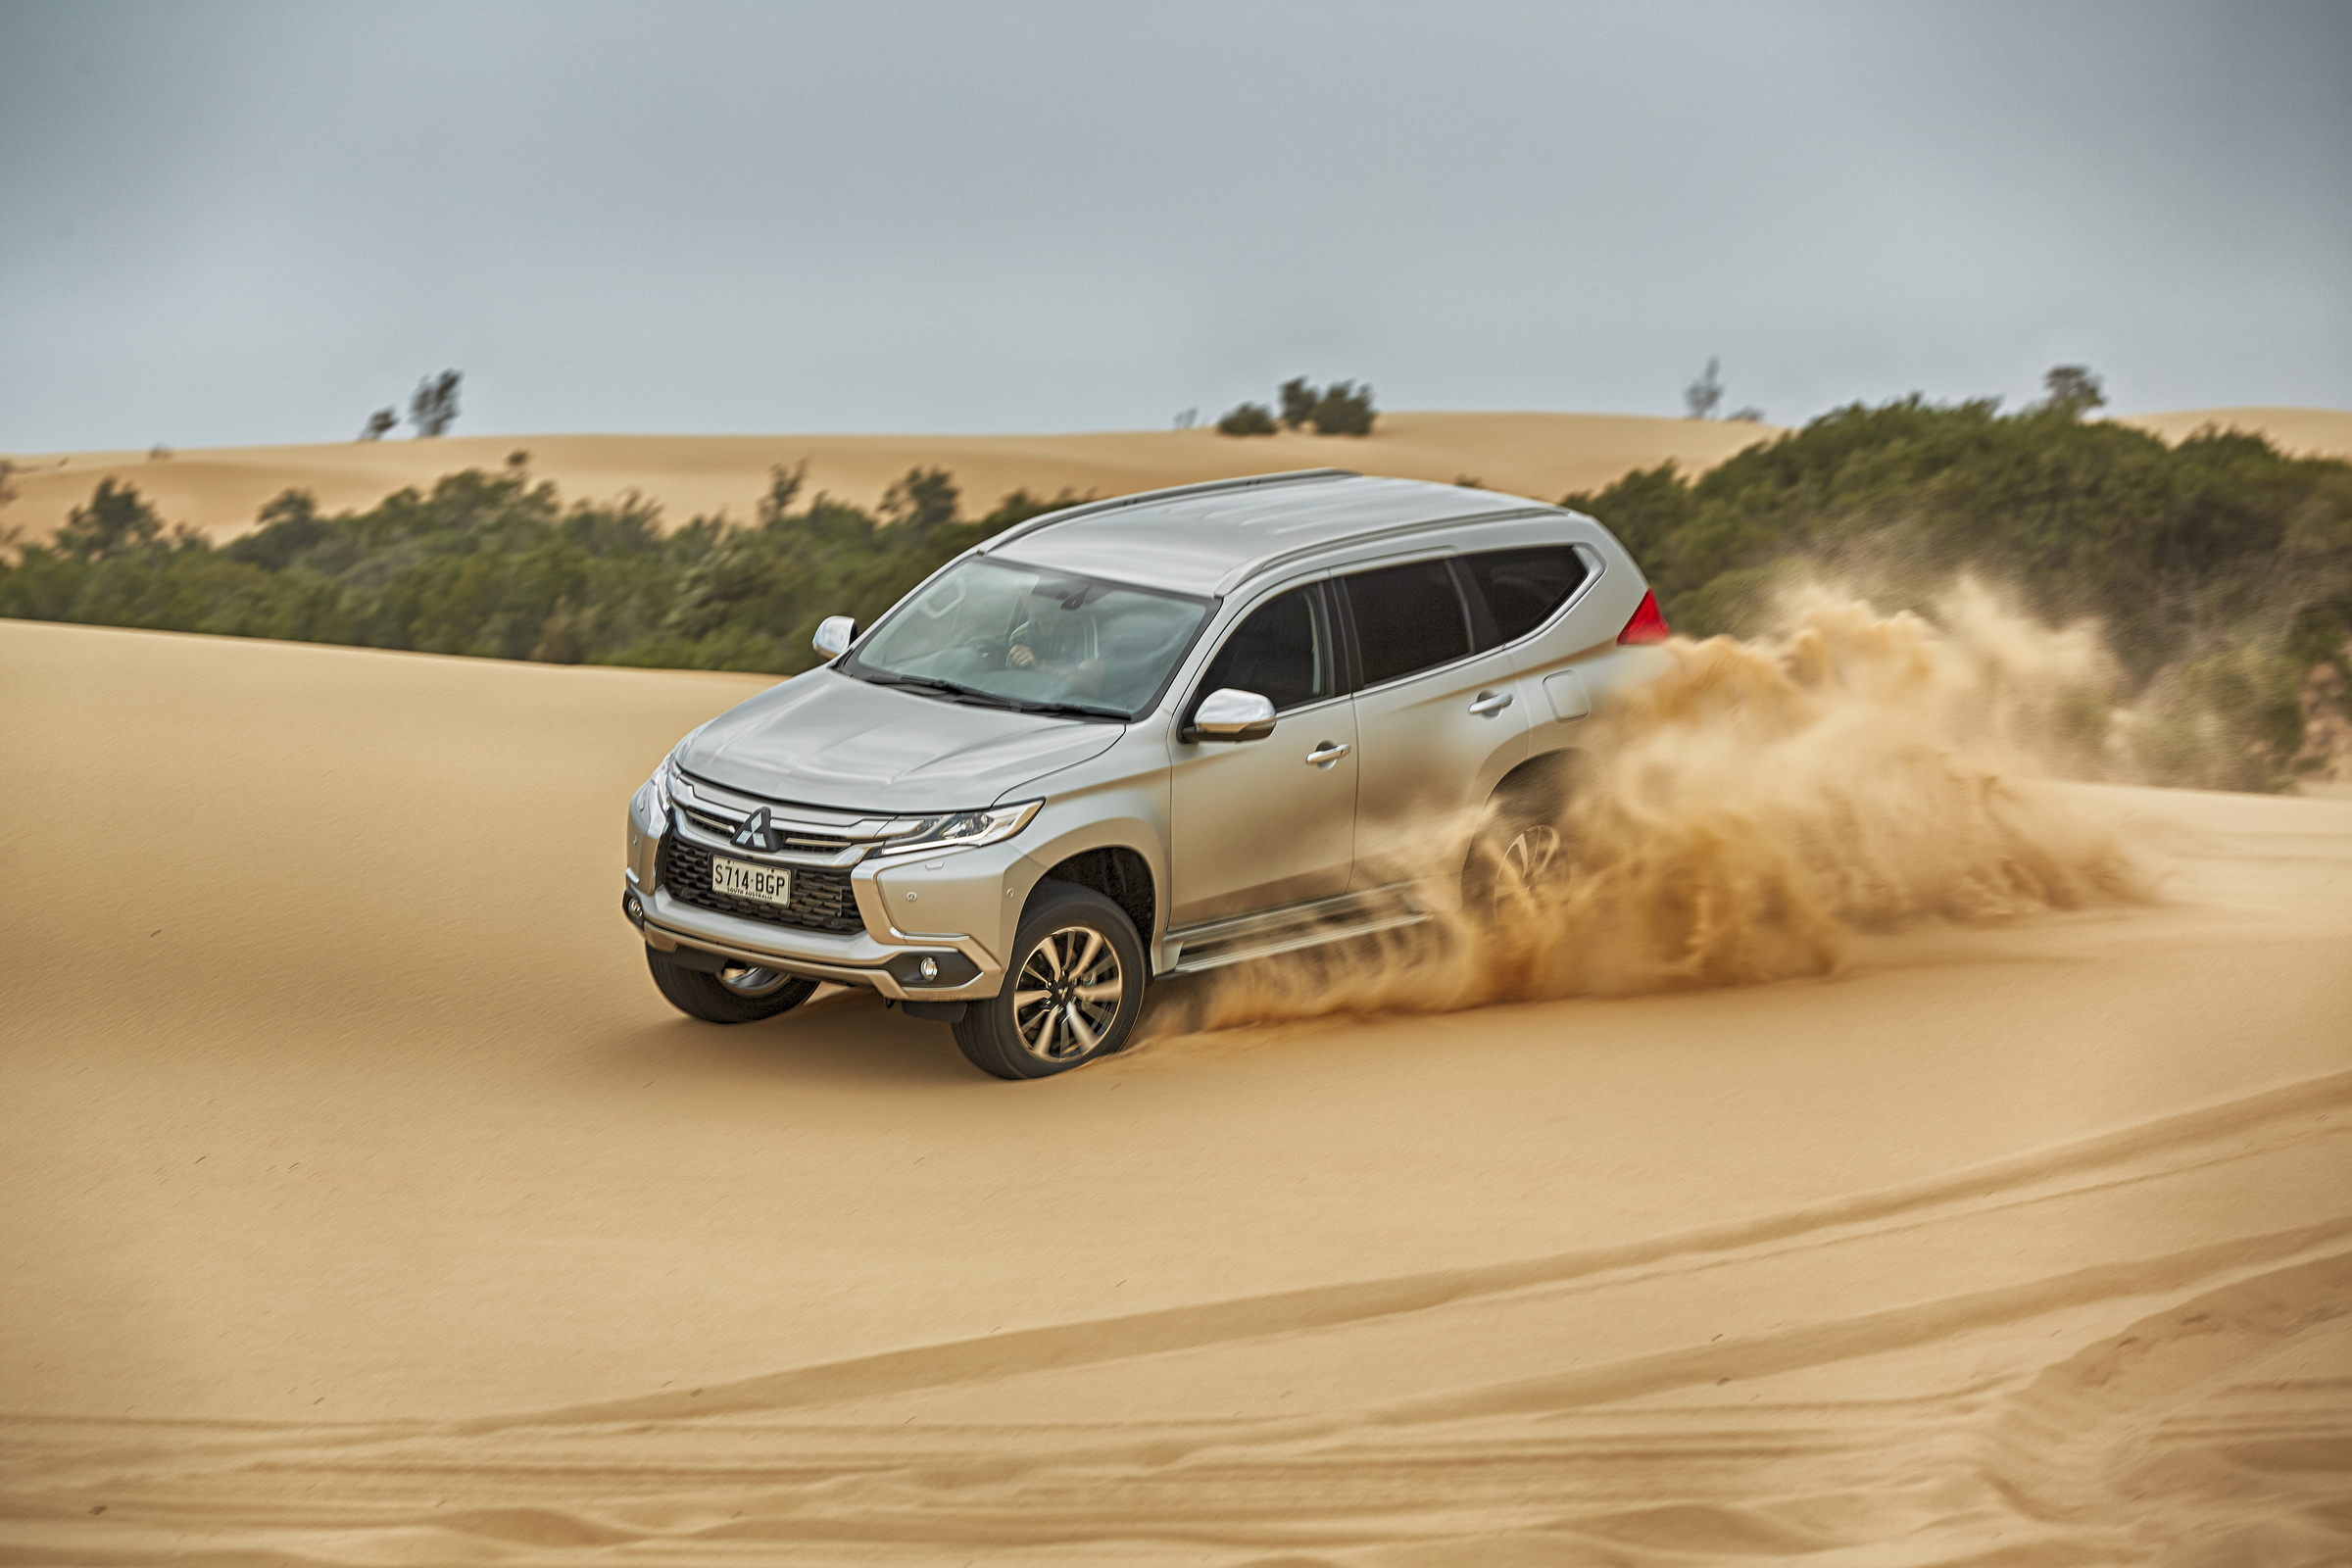 2016 Mitsubishi Pajero Sport Performance Test (Photo 14 of 23)